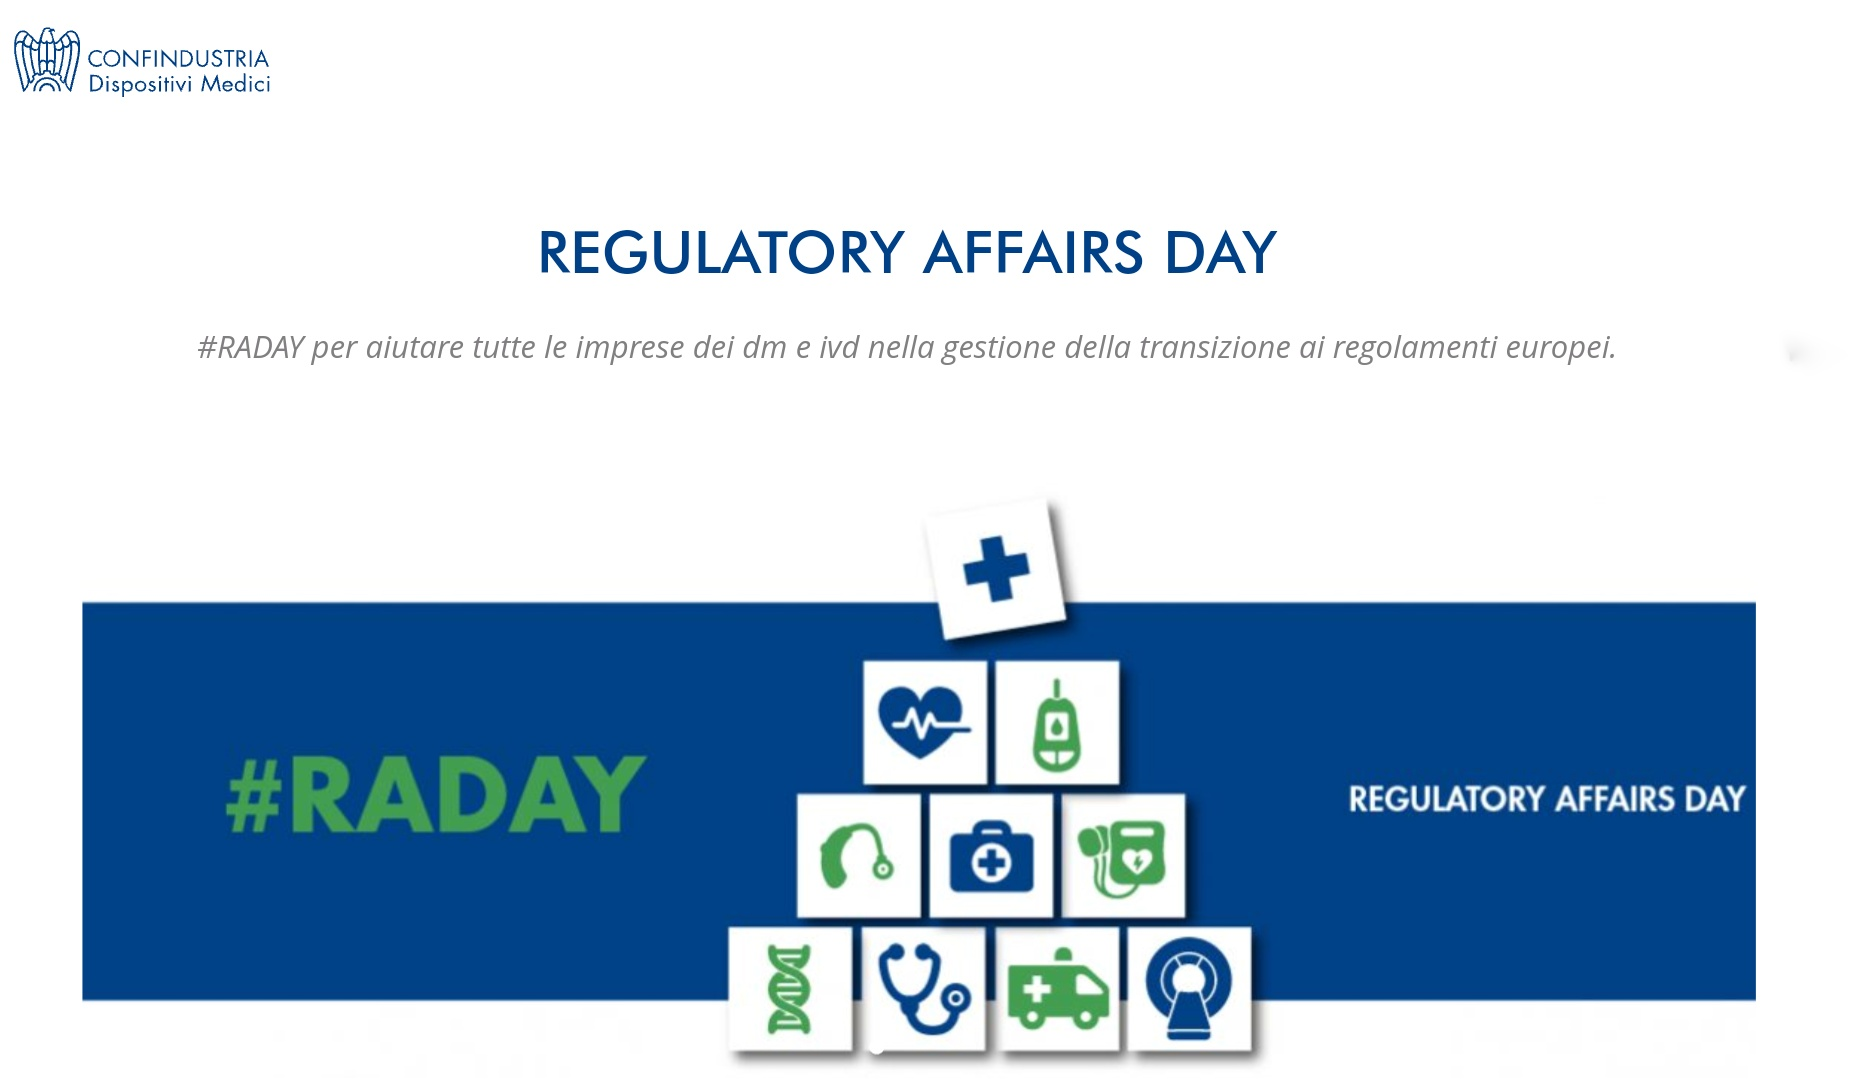 Regulatory Affairs Day di Confindustria Dispositivi Medici